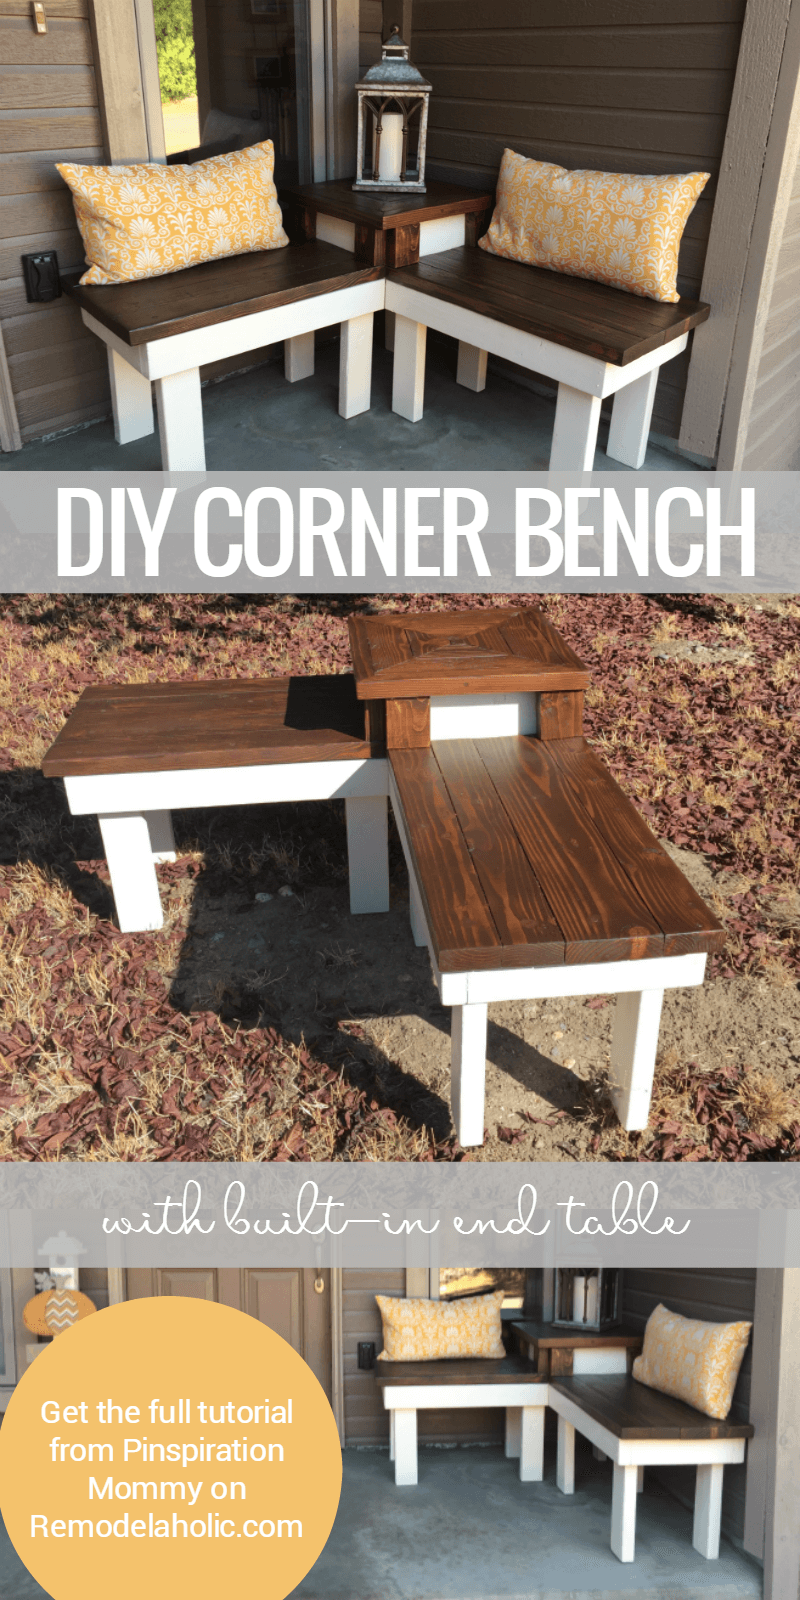 Innovative Corner Bench With Built In Side Table